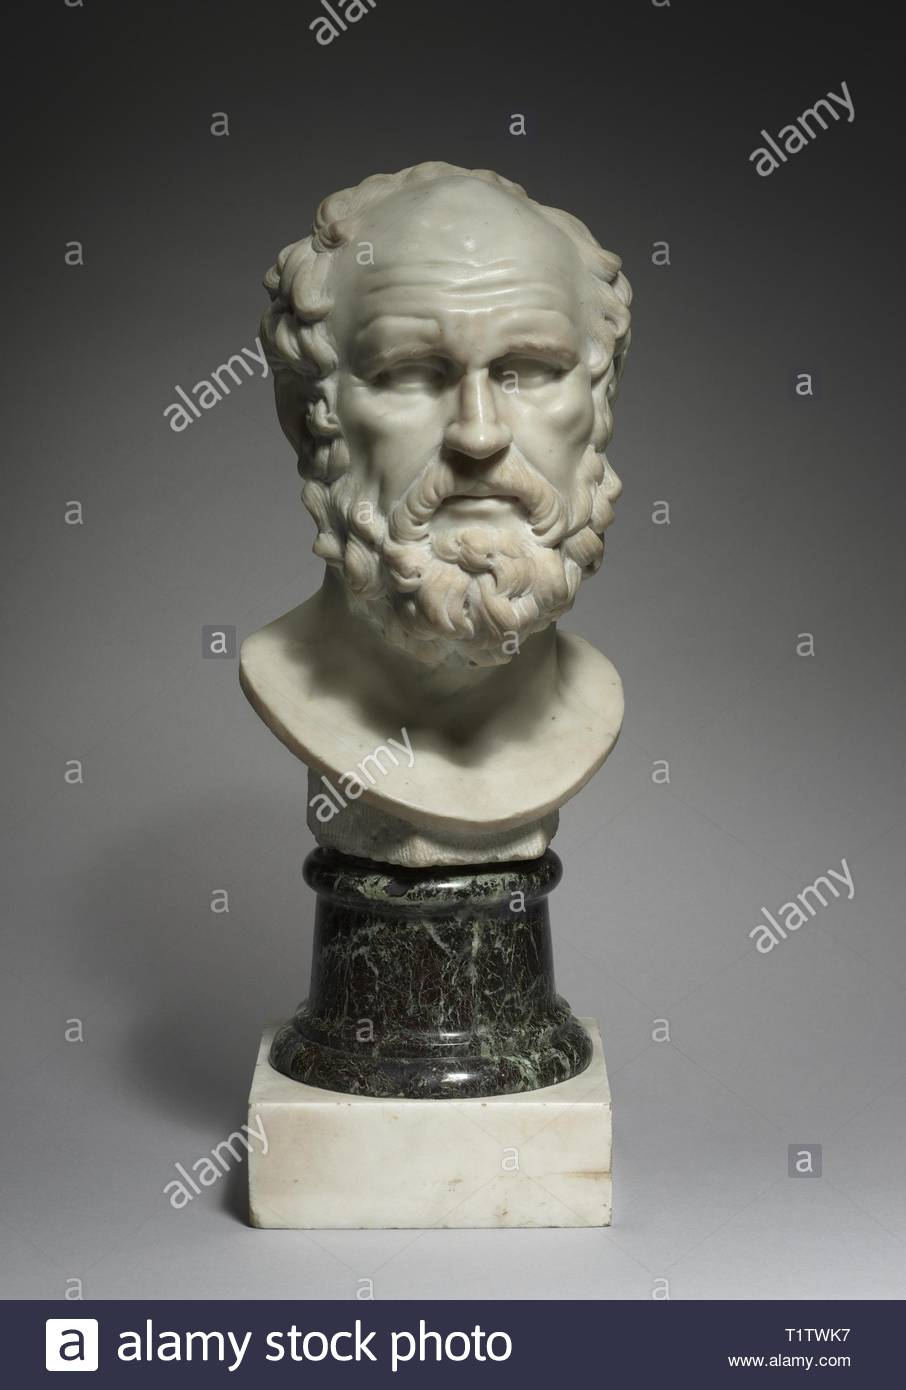 A Philosopher, 1662. Pierre Puget (French, 1620-1694). Marble; overall: 39.4 x 22.6 x 25.4 cm (15 1/2 x 8 7/8 x 10 in.); base: 20.5 x 20.5 x 20 cm (8 1/16 x 8 1/16 x 7 7/8 in.). - Stock Image